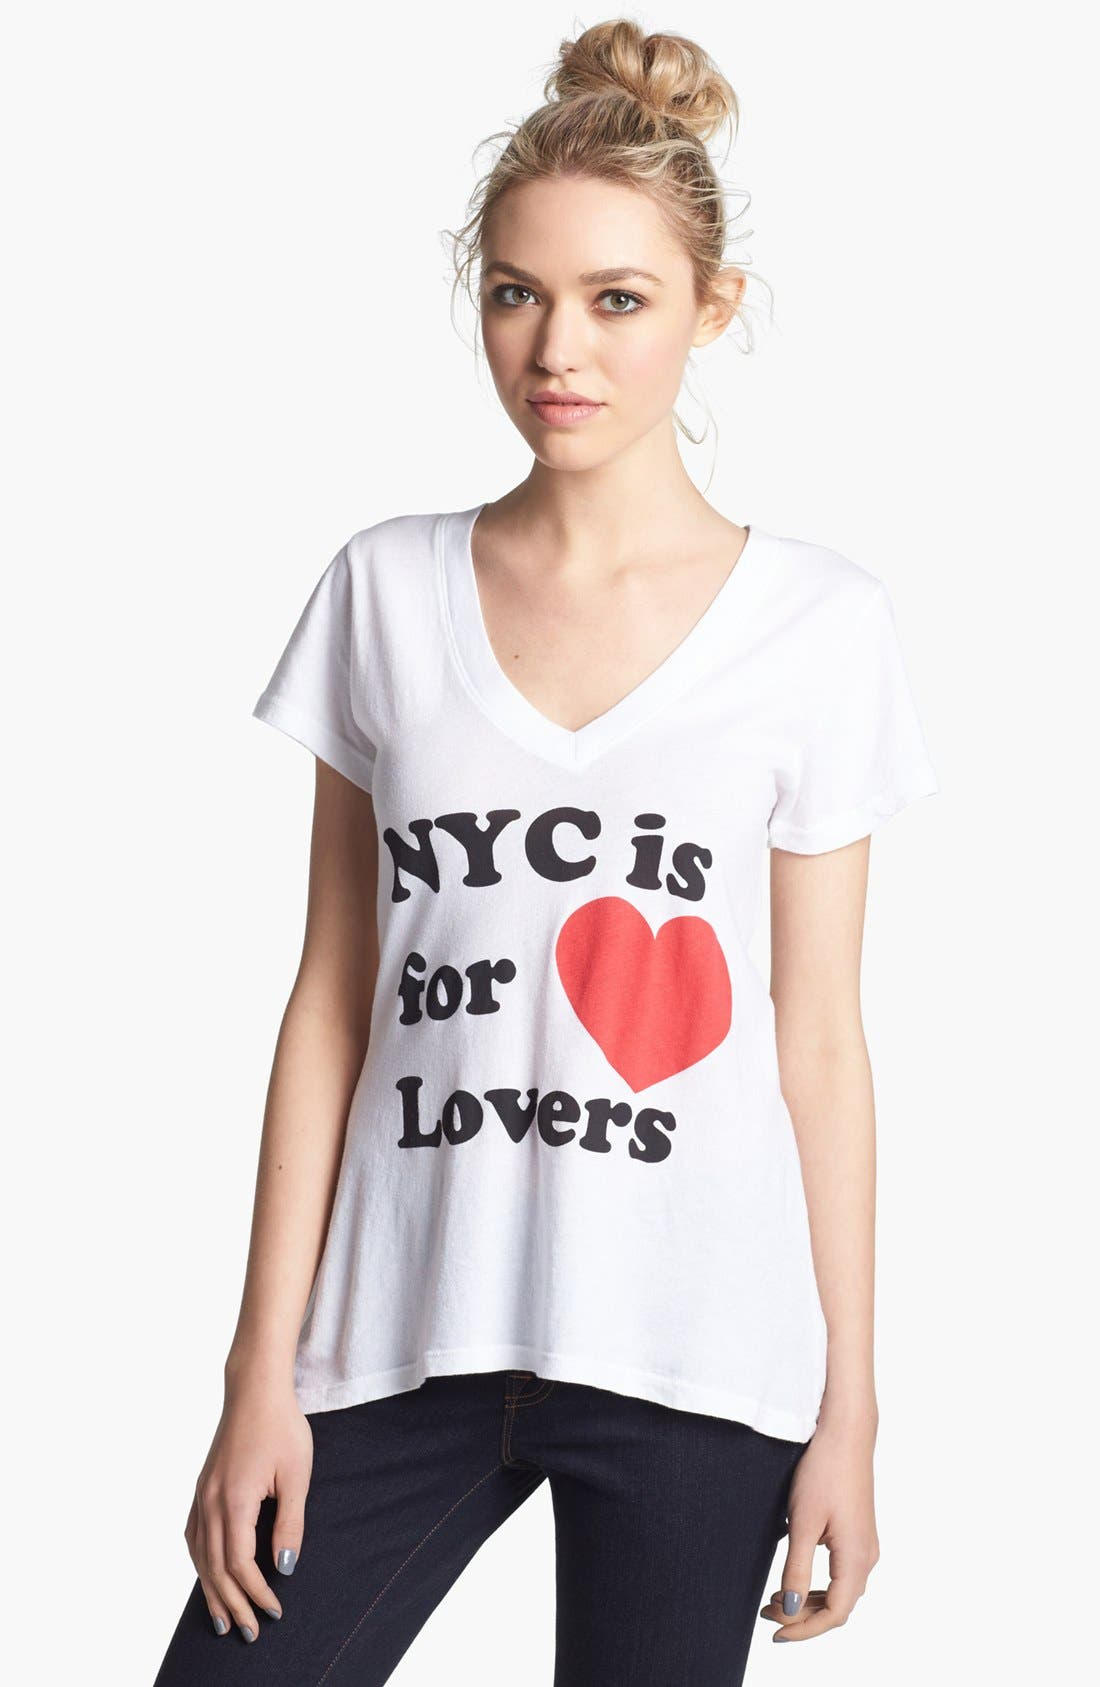 Alternate Image 1 Selected - Wildfox 'NYC 4 Lovers' V-Neck Tee (Nordstrom Exclusive)